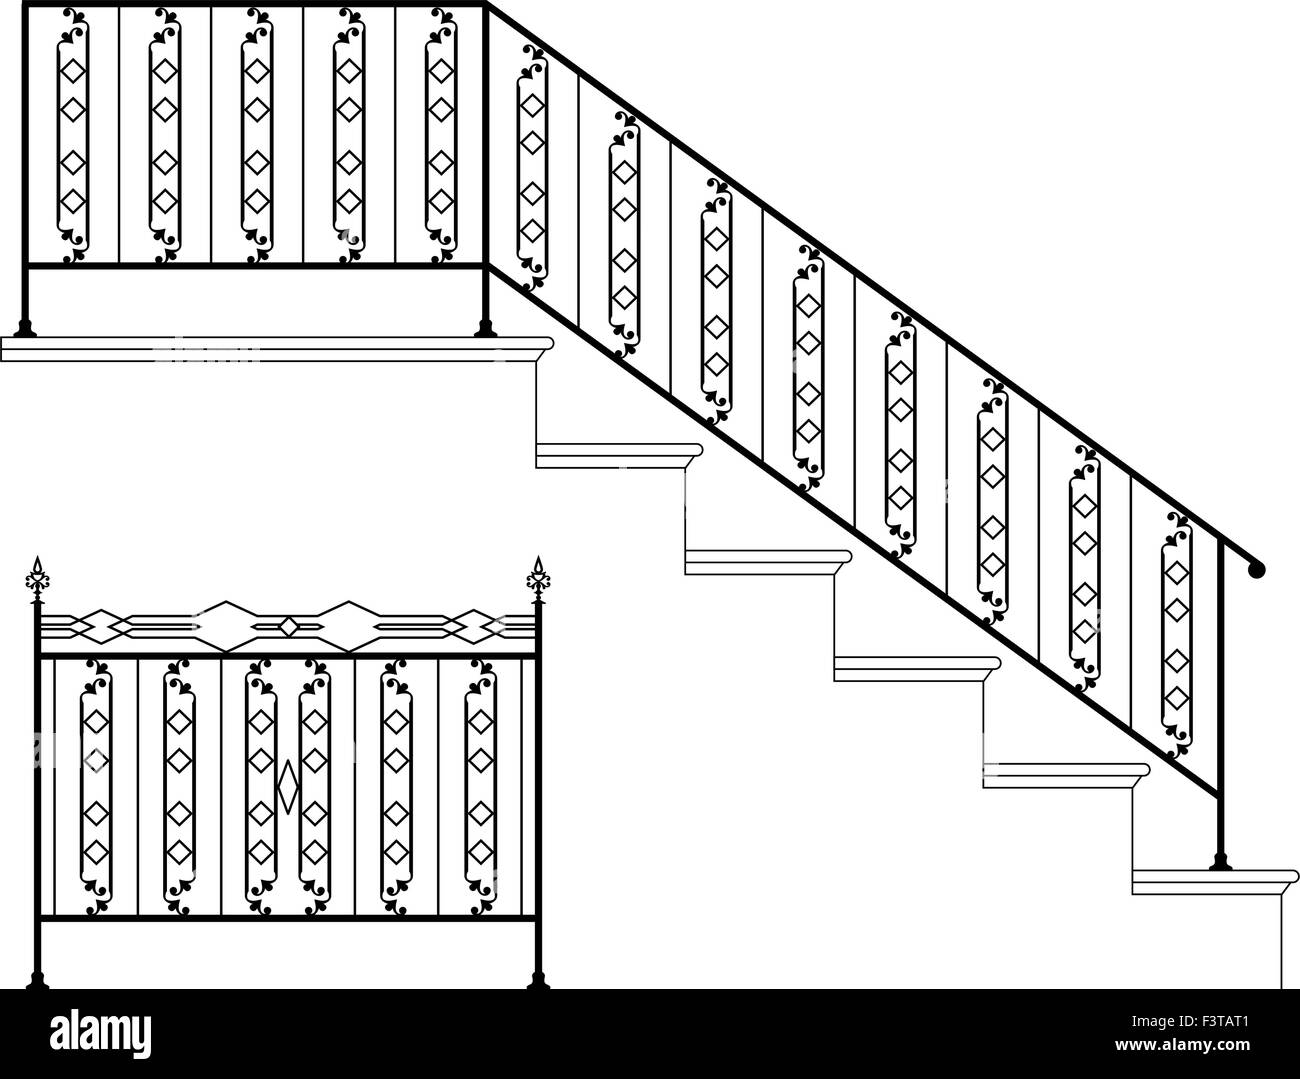 hight resolution of wrought iron stair railing design vector art stock vector art wrought iron stair railing pictures diagram